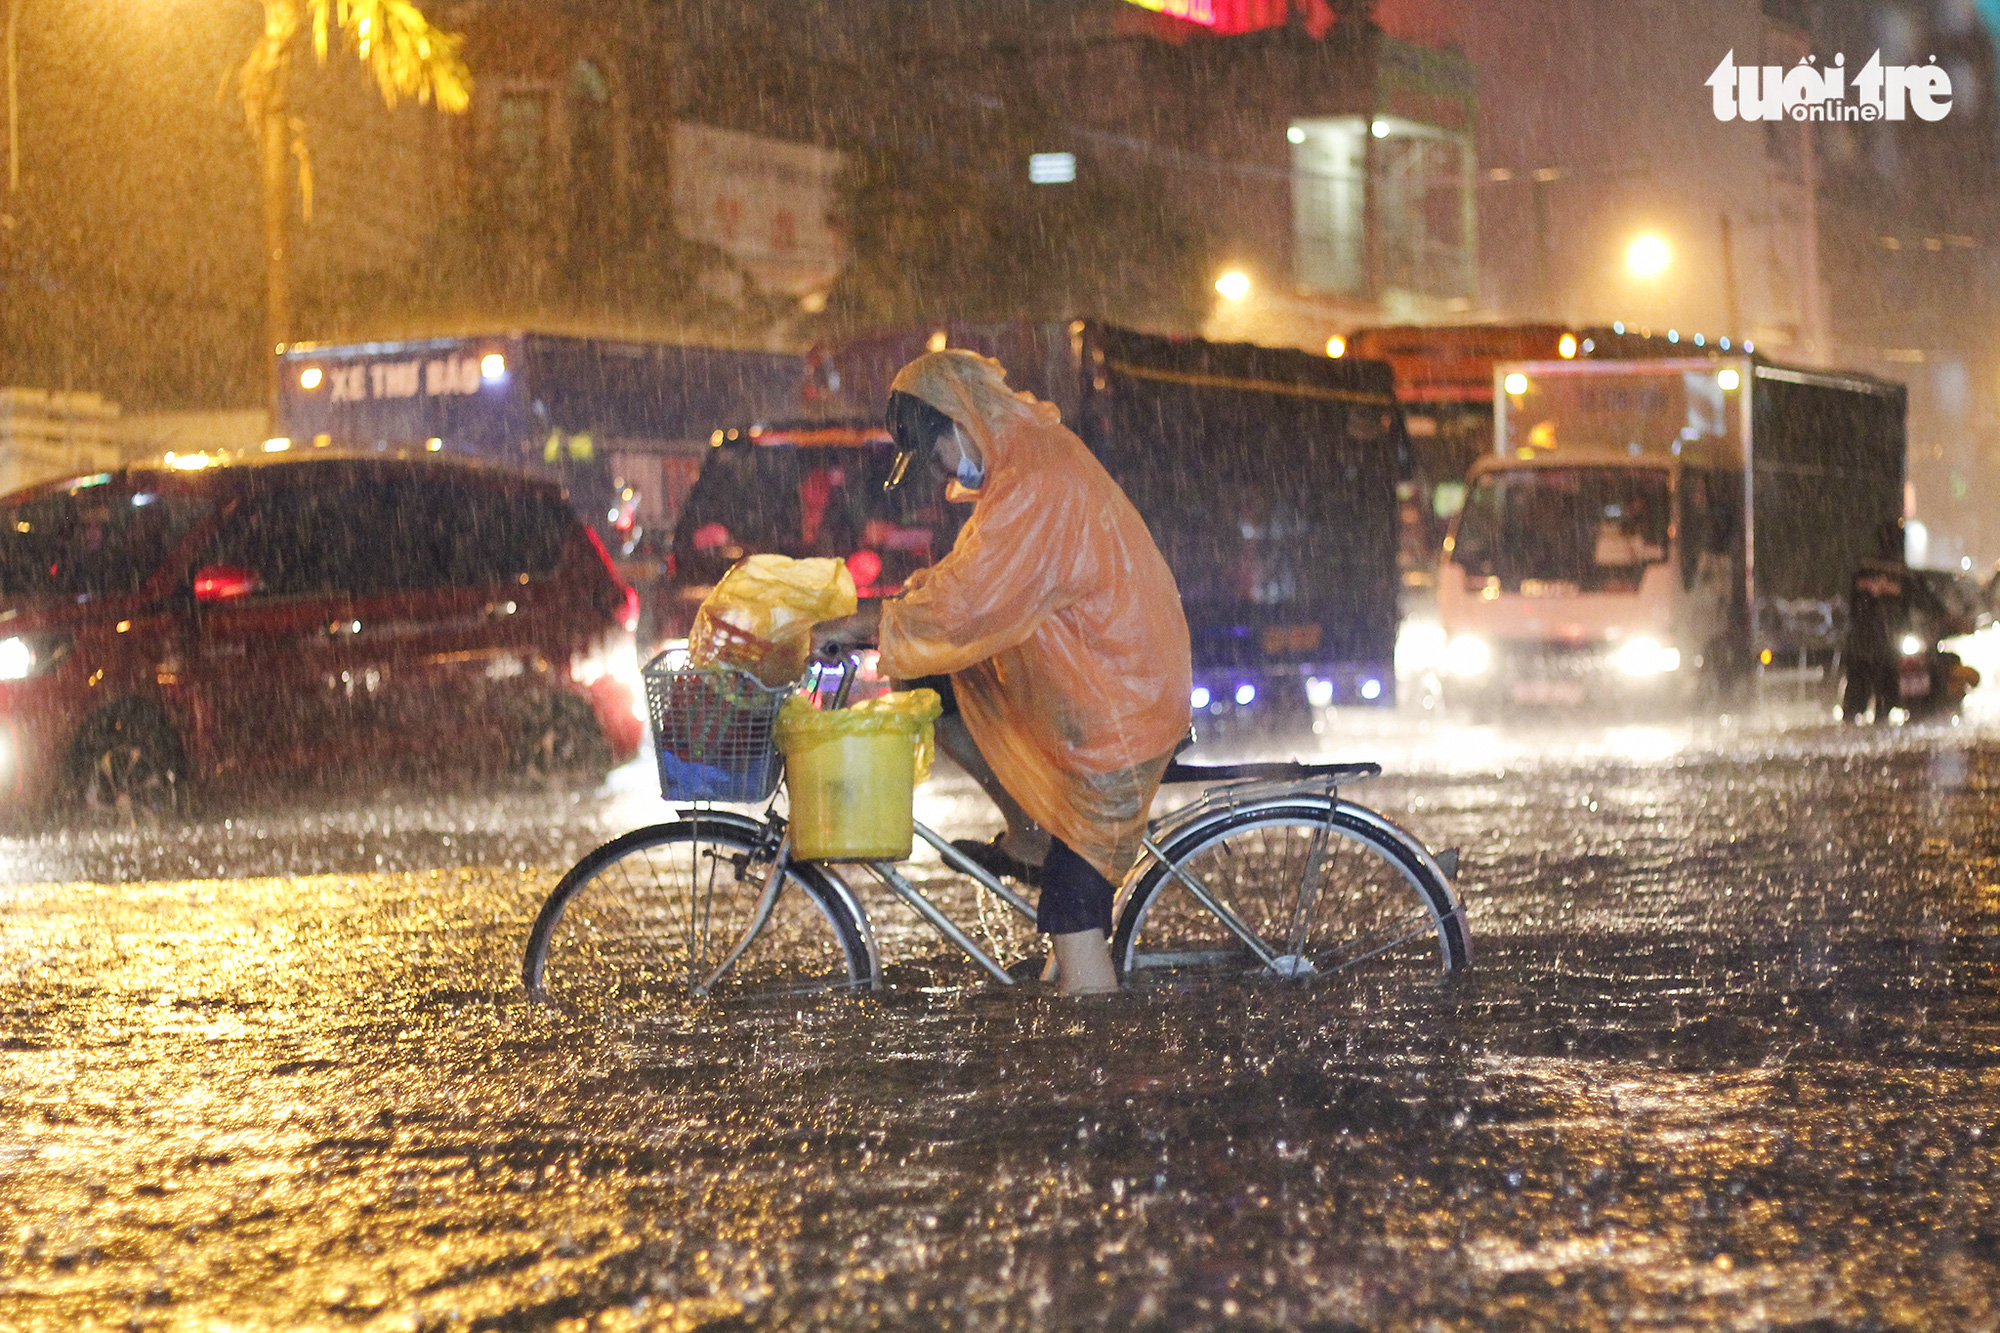 A resident has a hard time riding a bicycle in the heavy downpour that lashed Ho Chi Minh City on August 6, 2020. Photo: Chau Tuan / Tuoi Tre